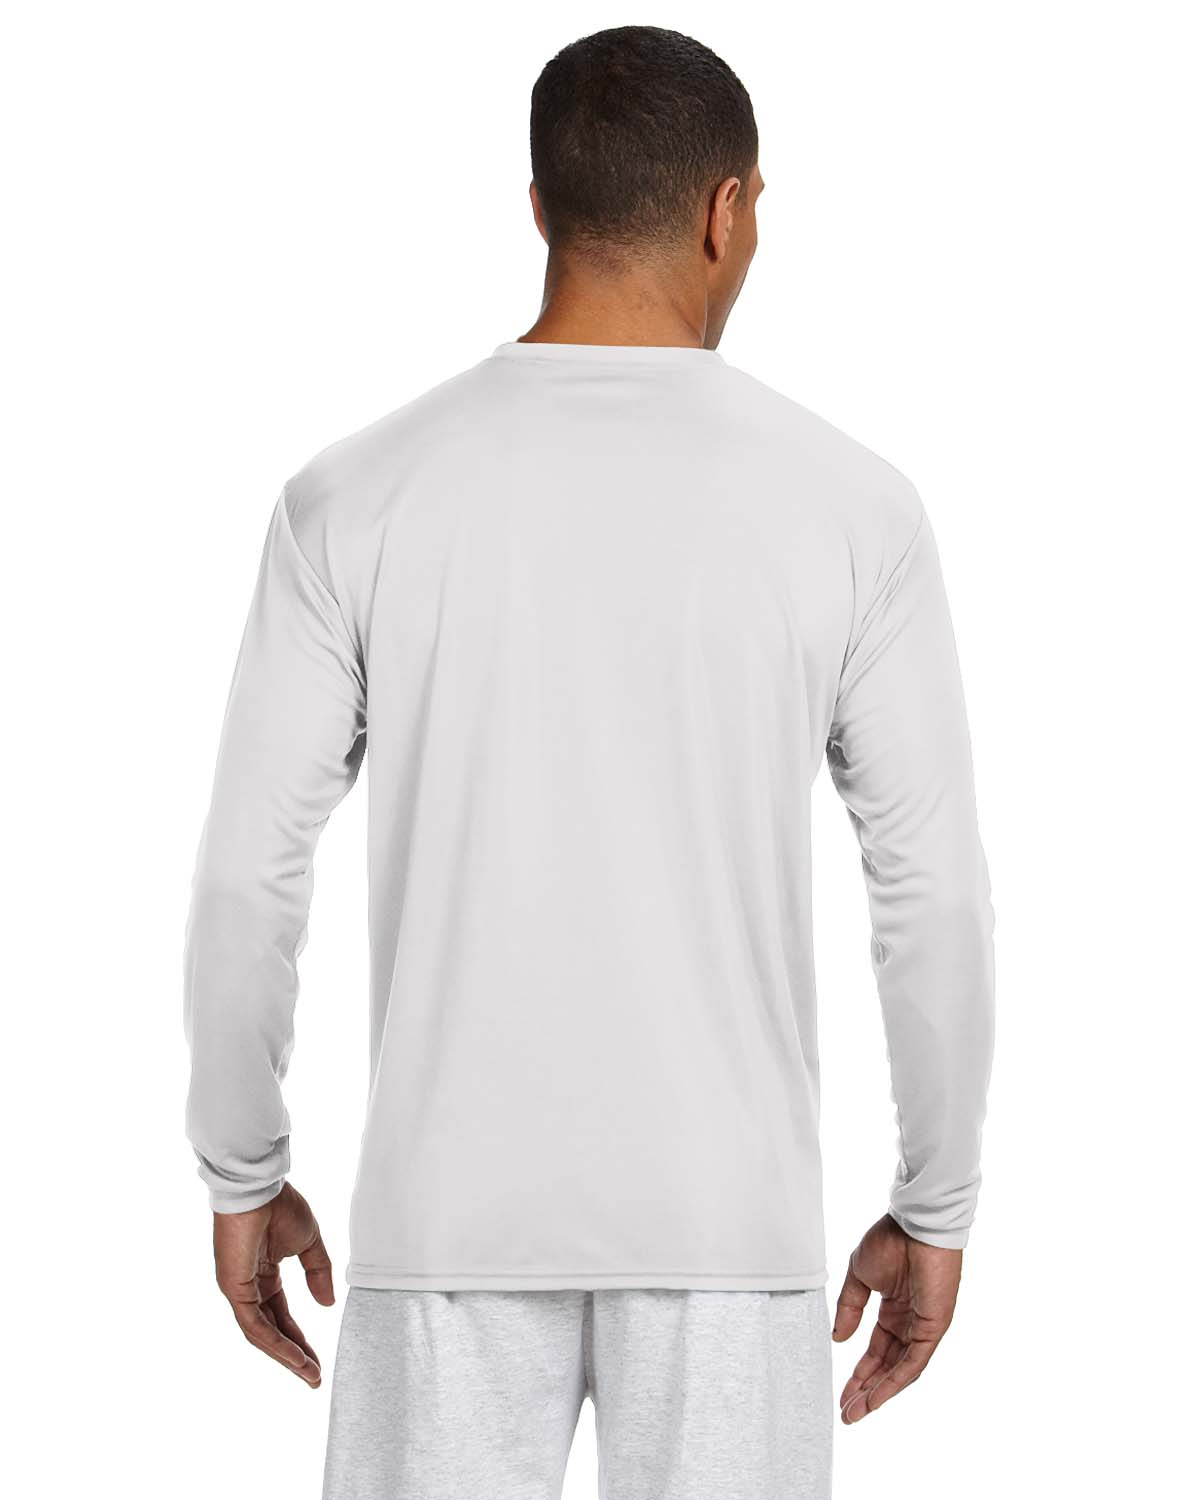 95266d4a A4 Mens Cooling Performance Long Sleeve T-shirt White L for sale online |  eBay